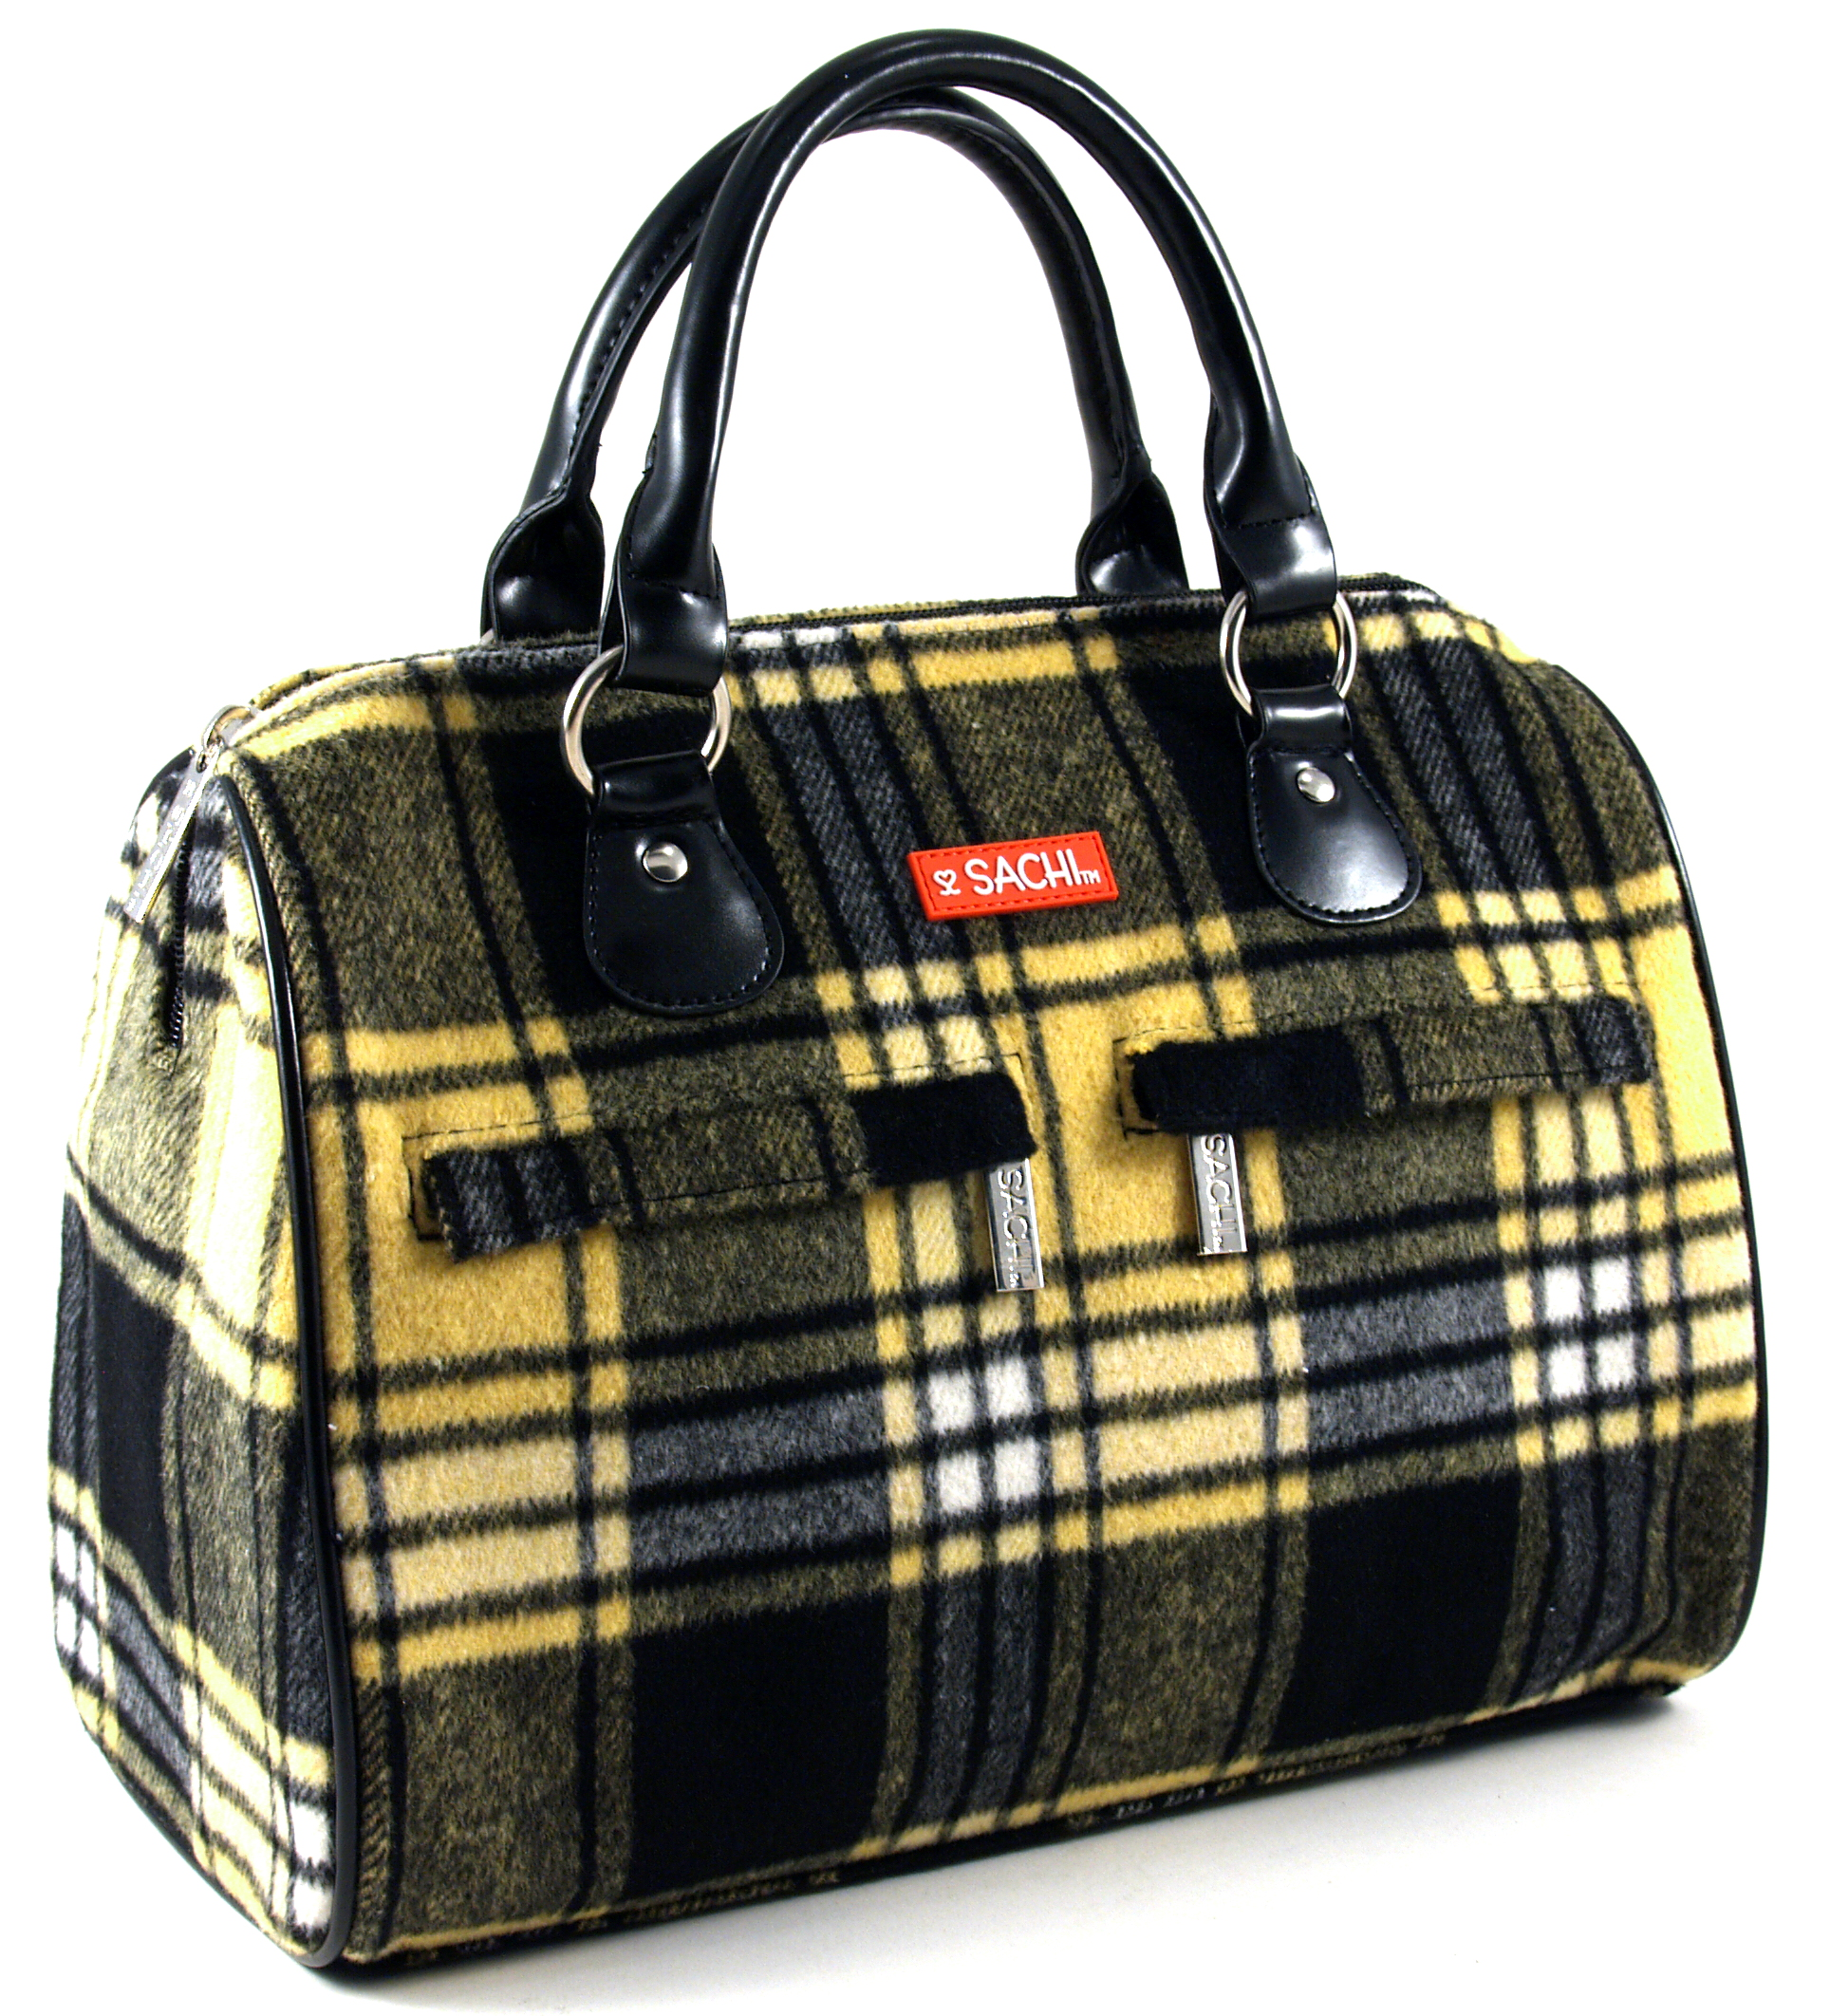 Sachi Woolies Yellow Plaid Insulated Lunch Tote